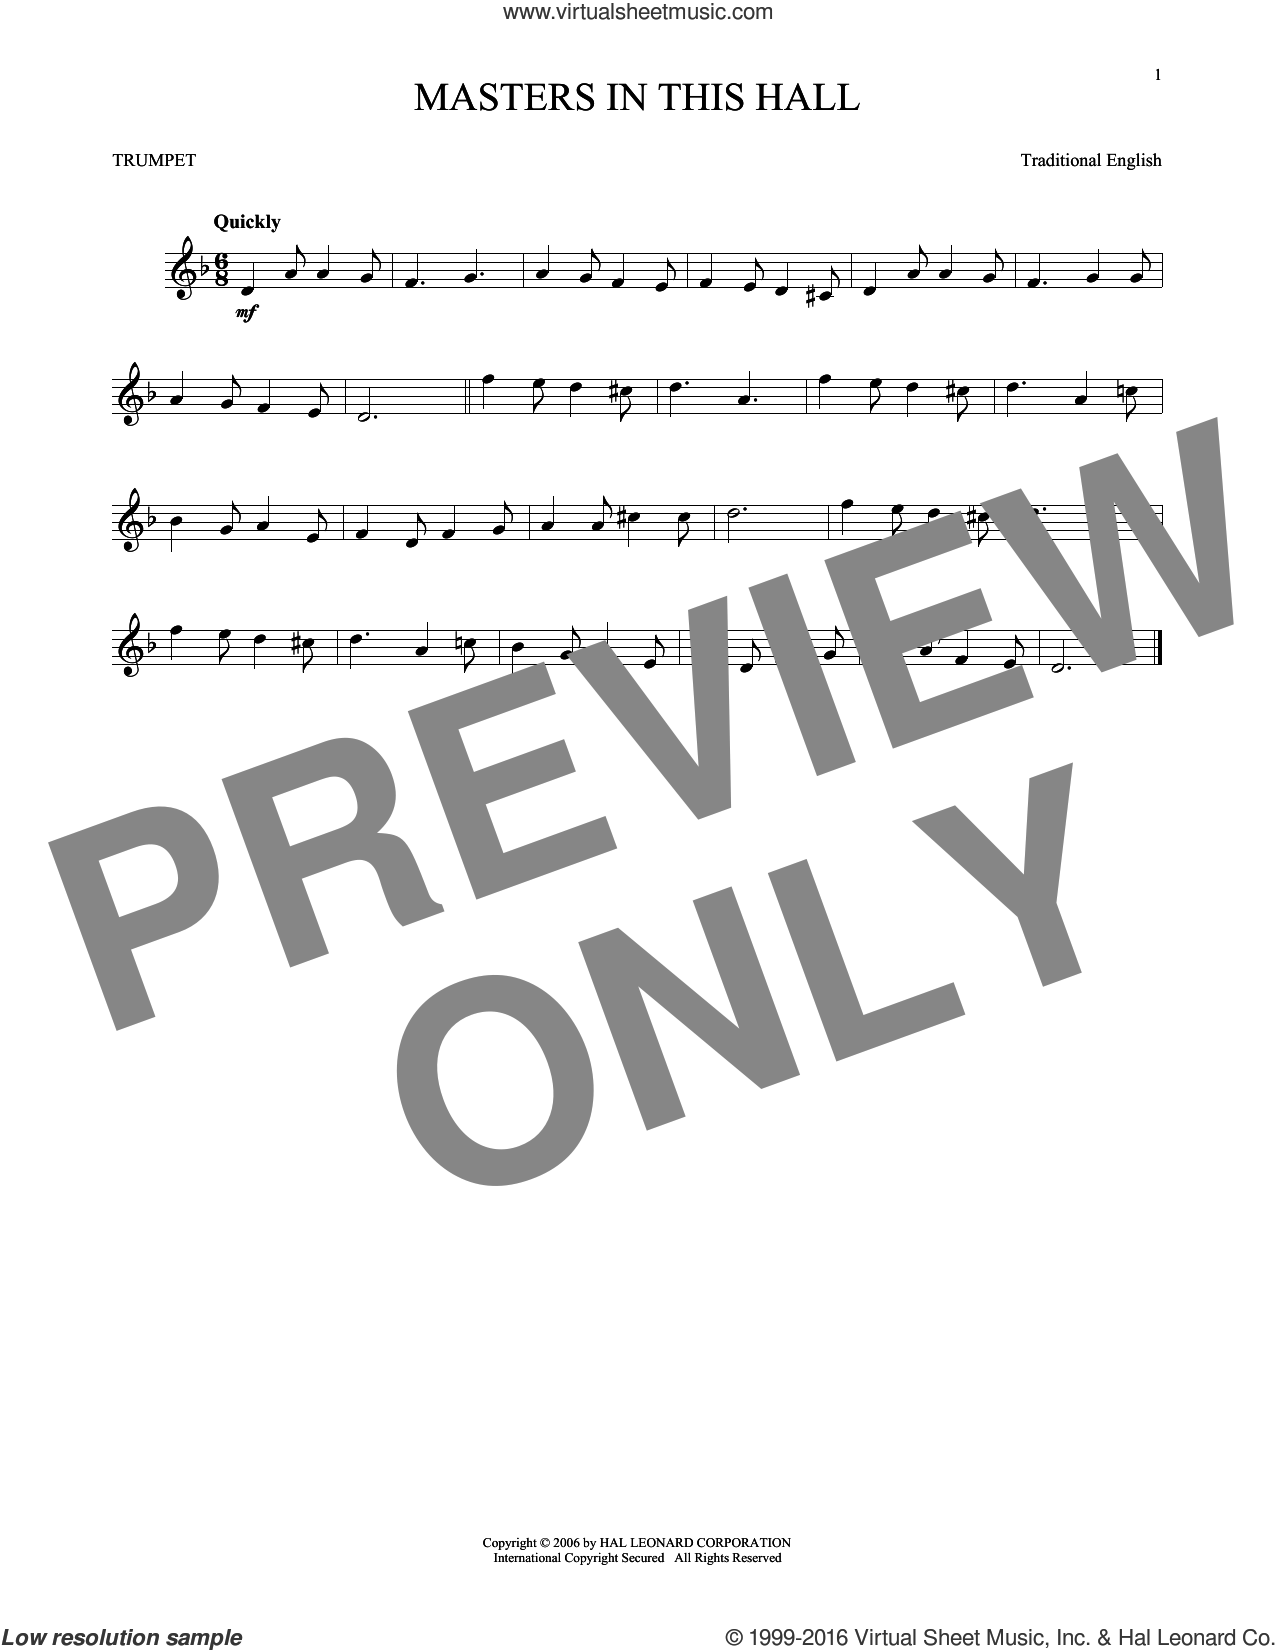 Masters In This Hall sheet music for trumpet solo, intermediate skill level